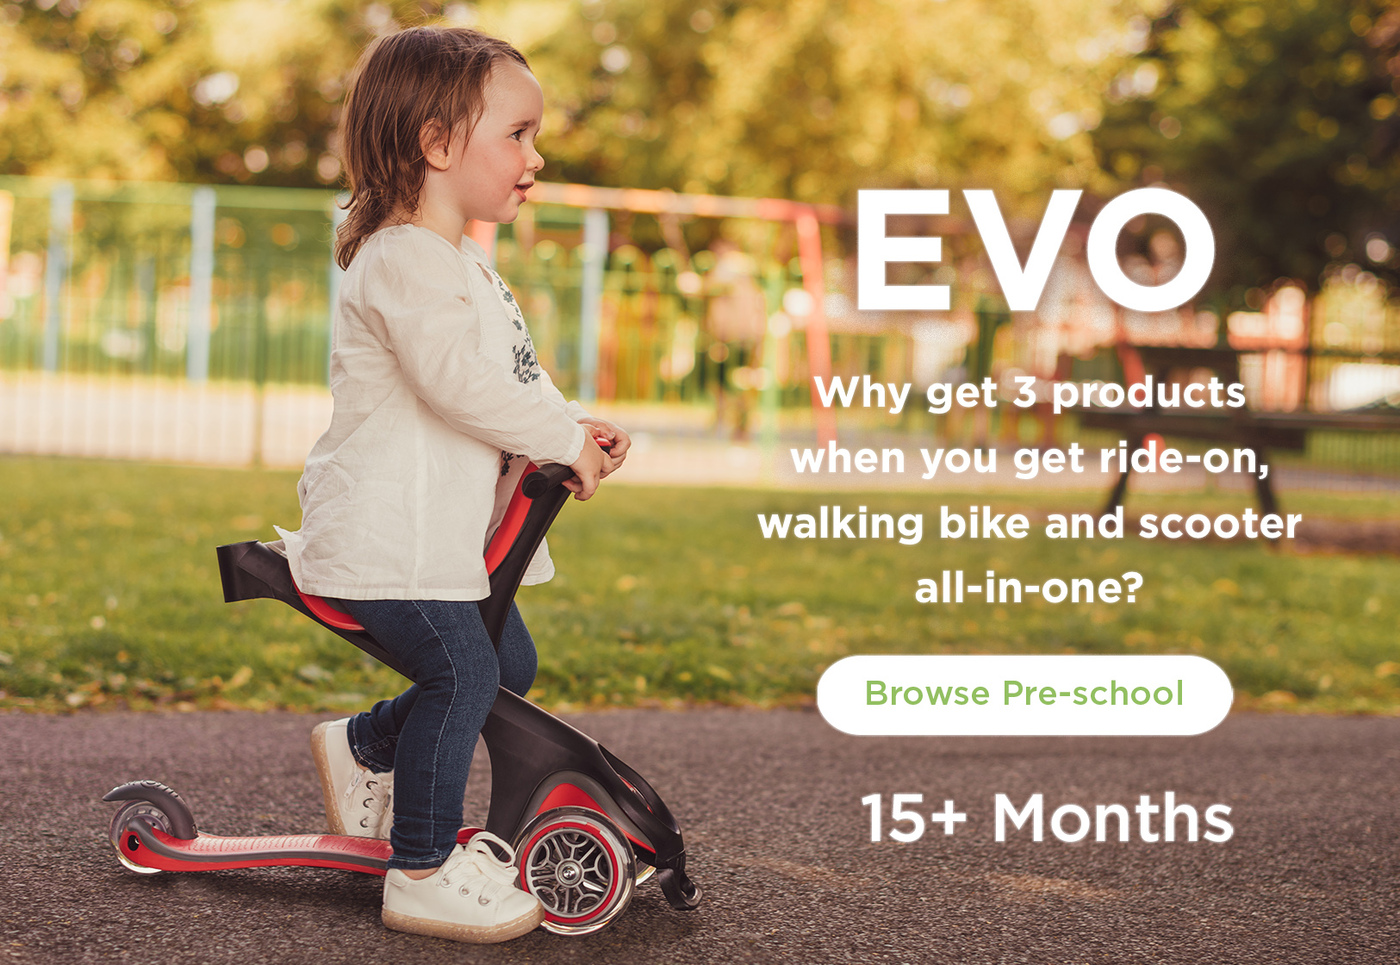 Why buy 3 products when you can get a ride-on, walking bike & scooter all-in-one?